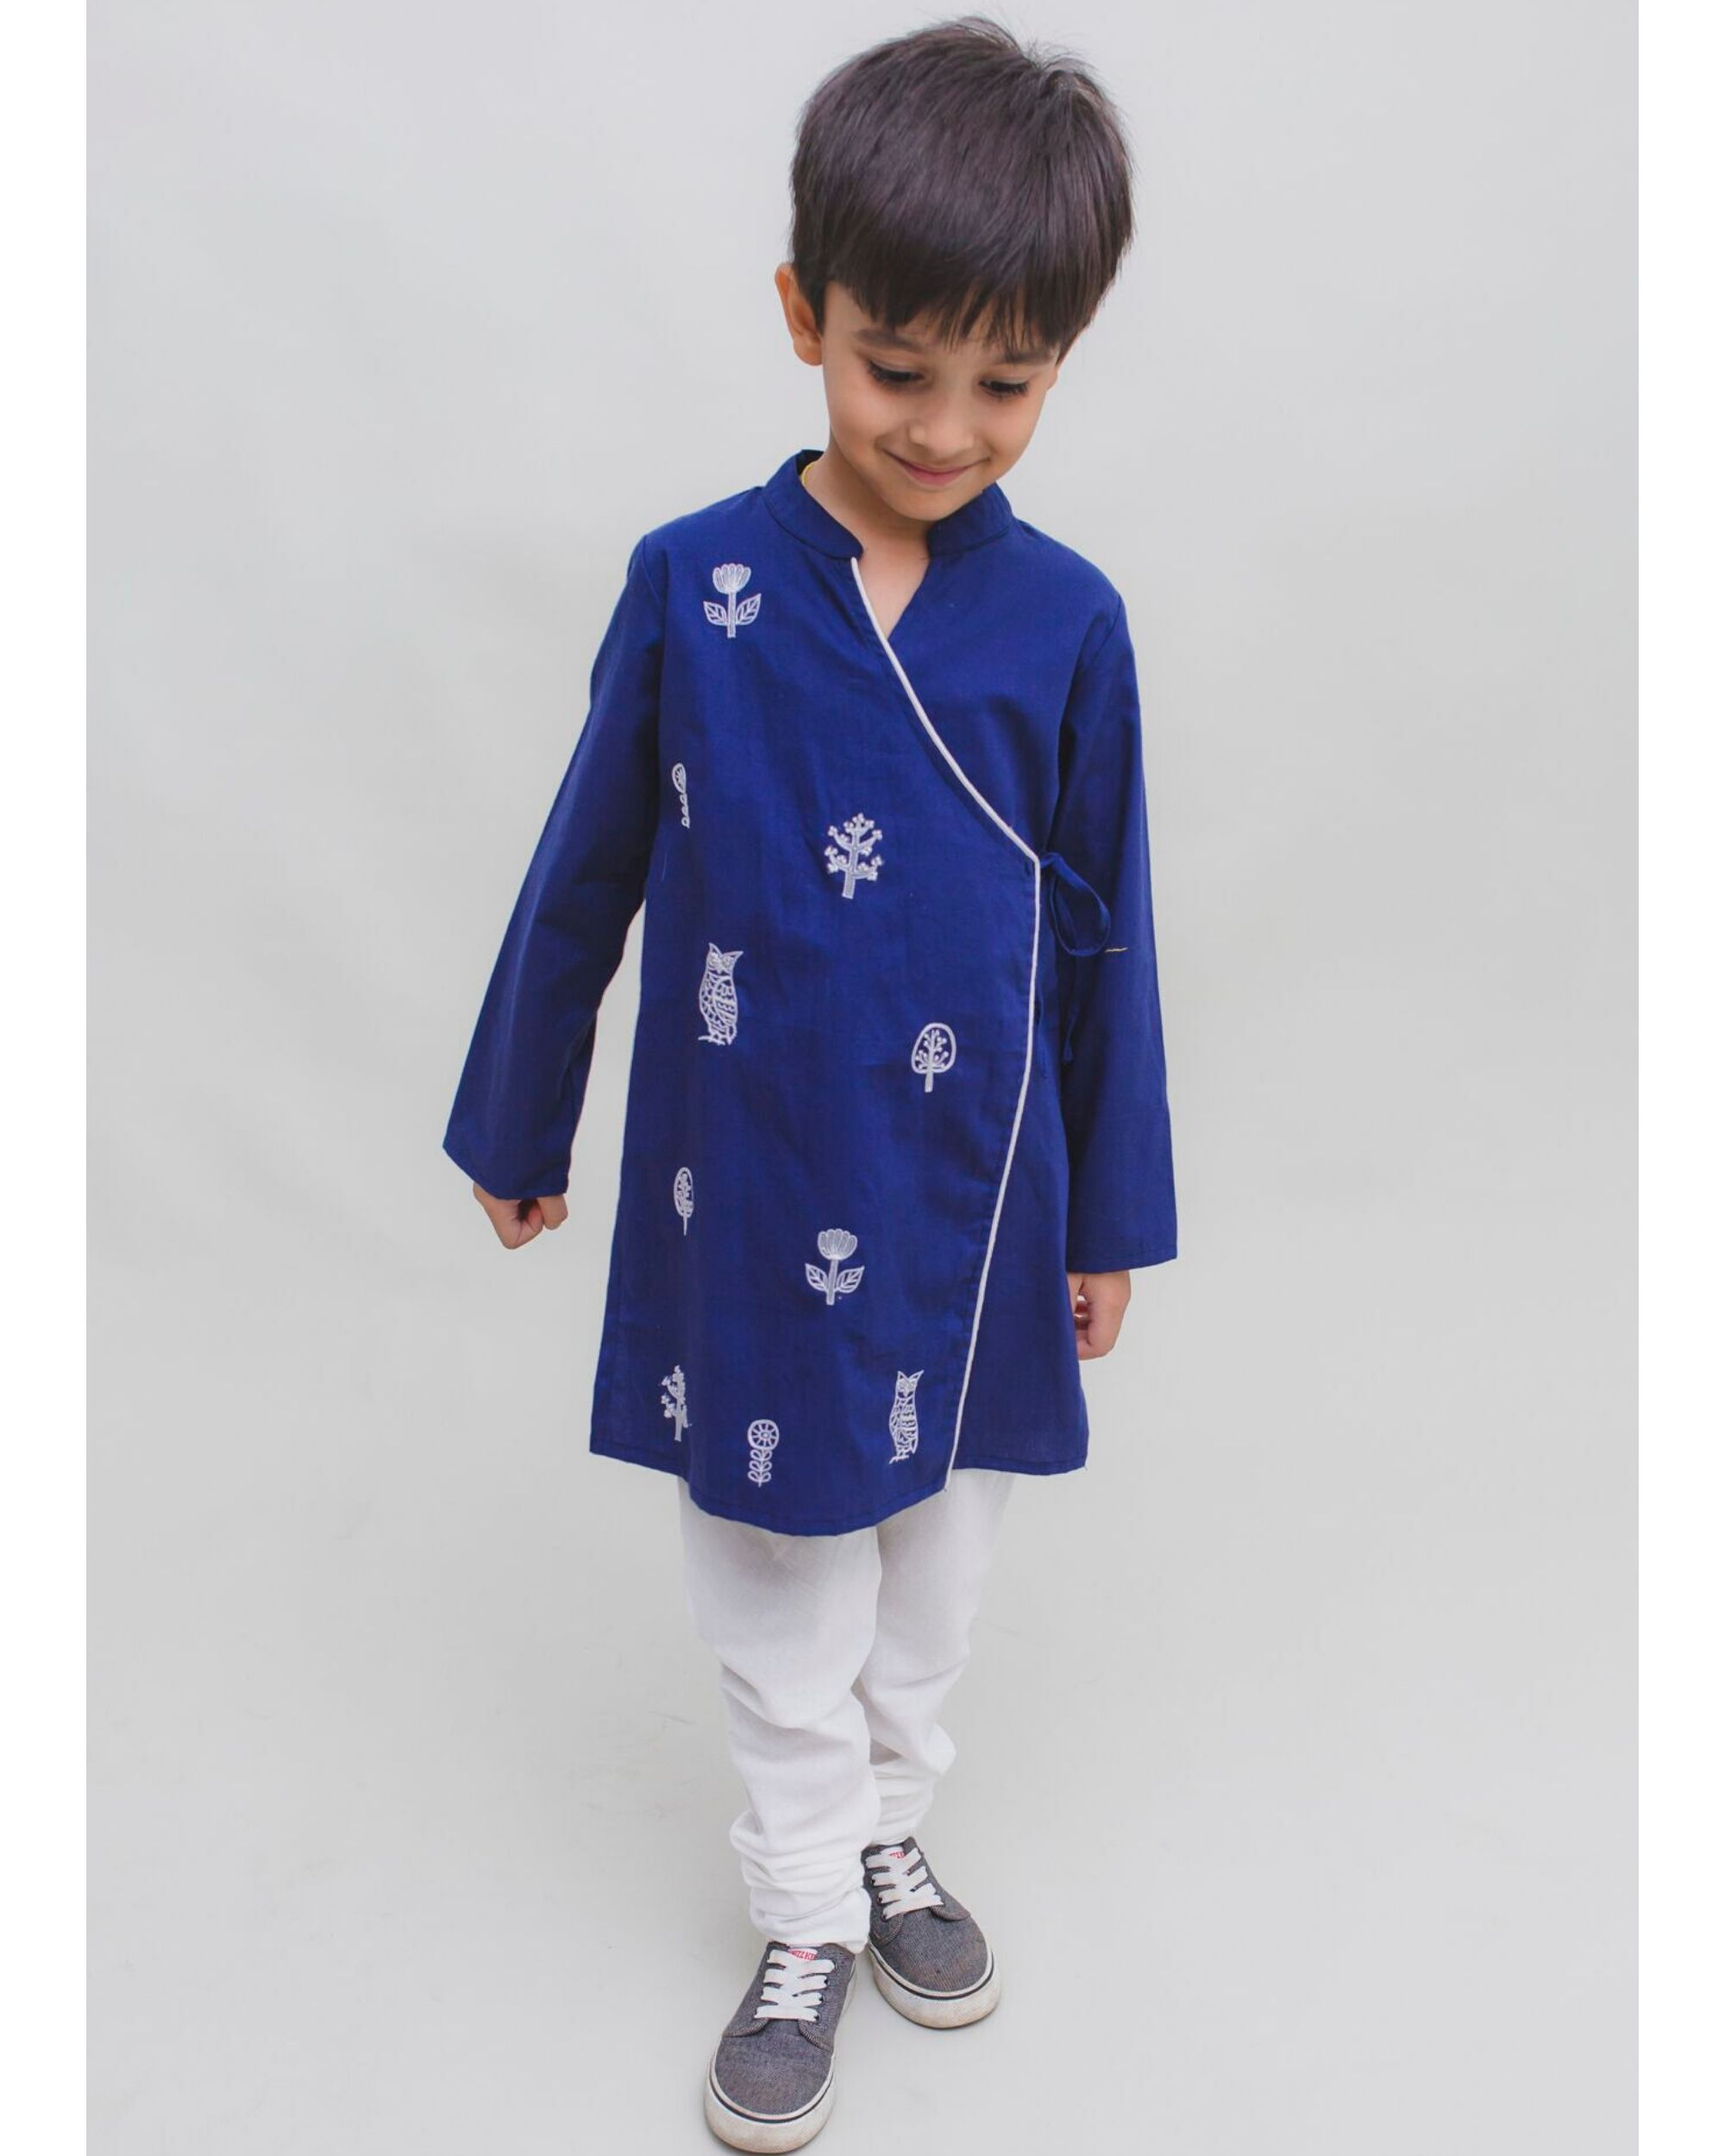 Royal blue owl embroidered angrakha kurta and Pyjama Set - Set Of Two